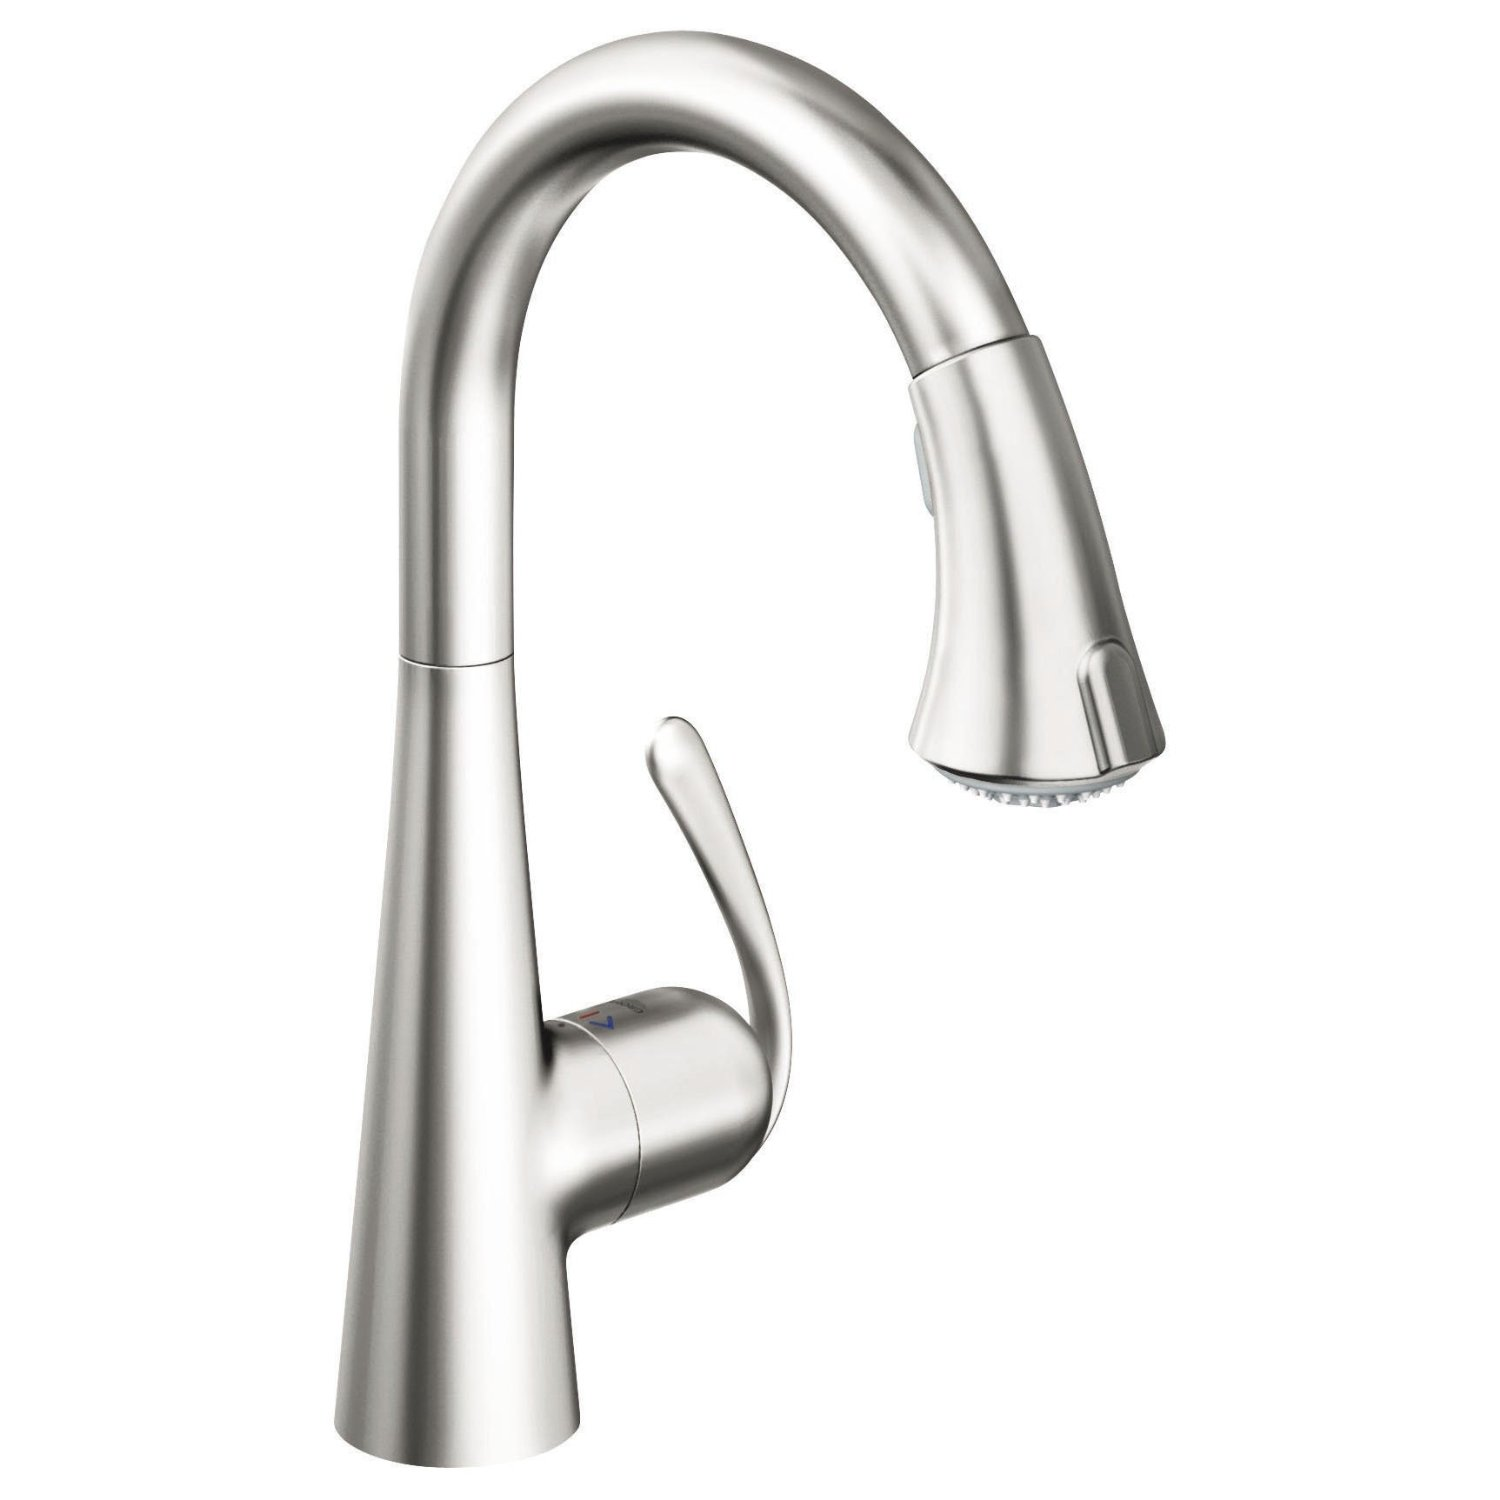 Faucet Sink Kitchen : Grohe 32298SD0 Ladylux3 Main Sink Dual Spray Pull-Down Kitchen Faucet ...